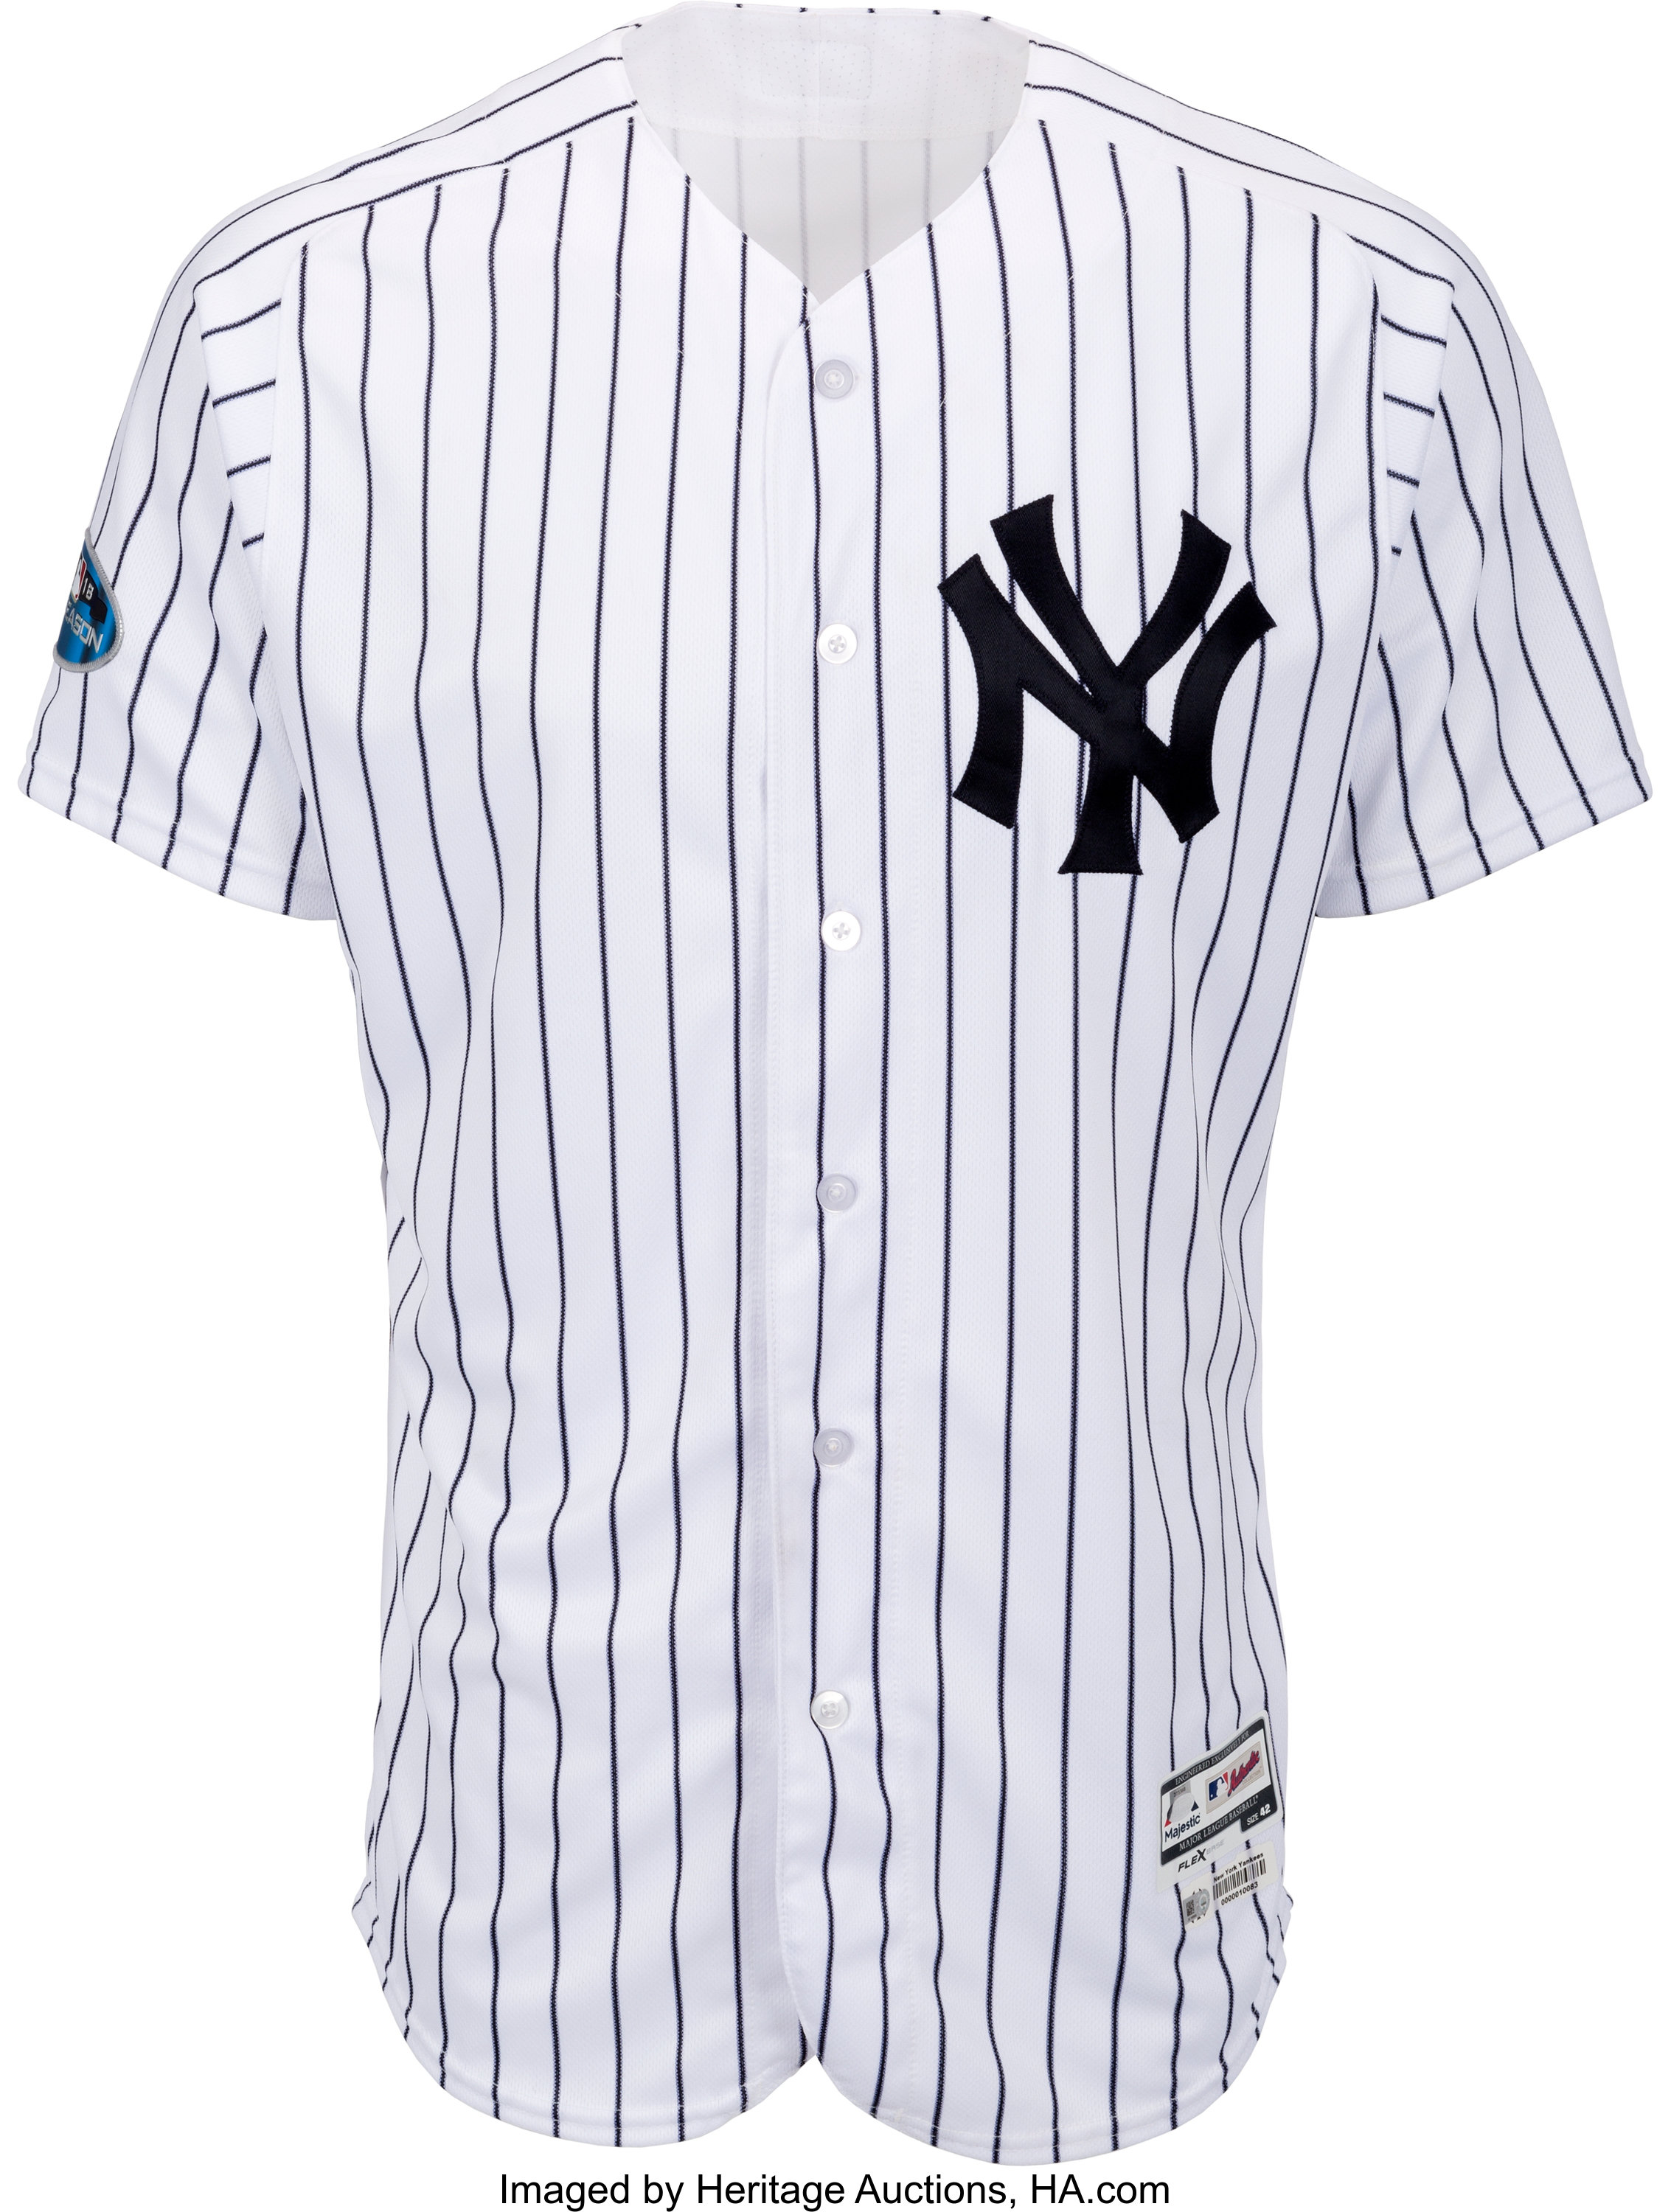 e477192a 2018 Andrew McCutchen Game Worn New York Yankees Jersey Used 10/3   Lot  #56505   Heritage Auctions